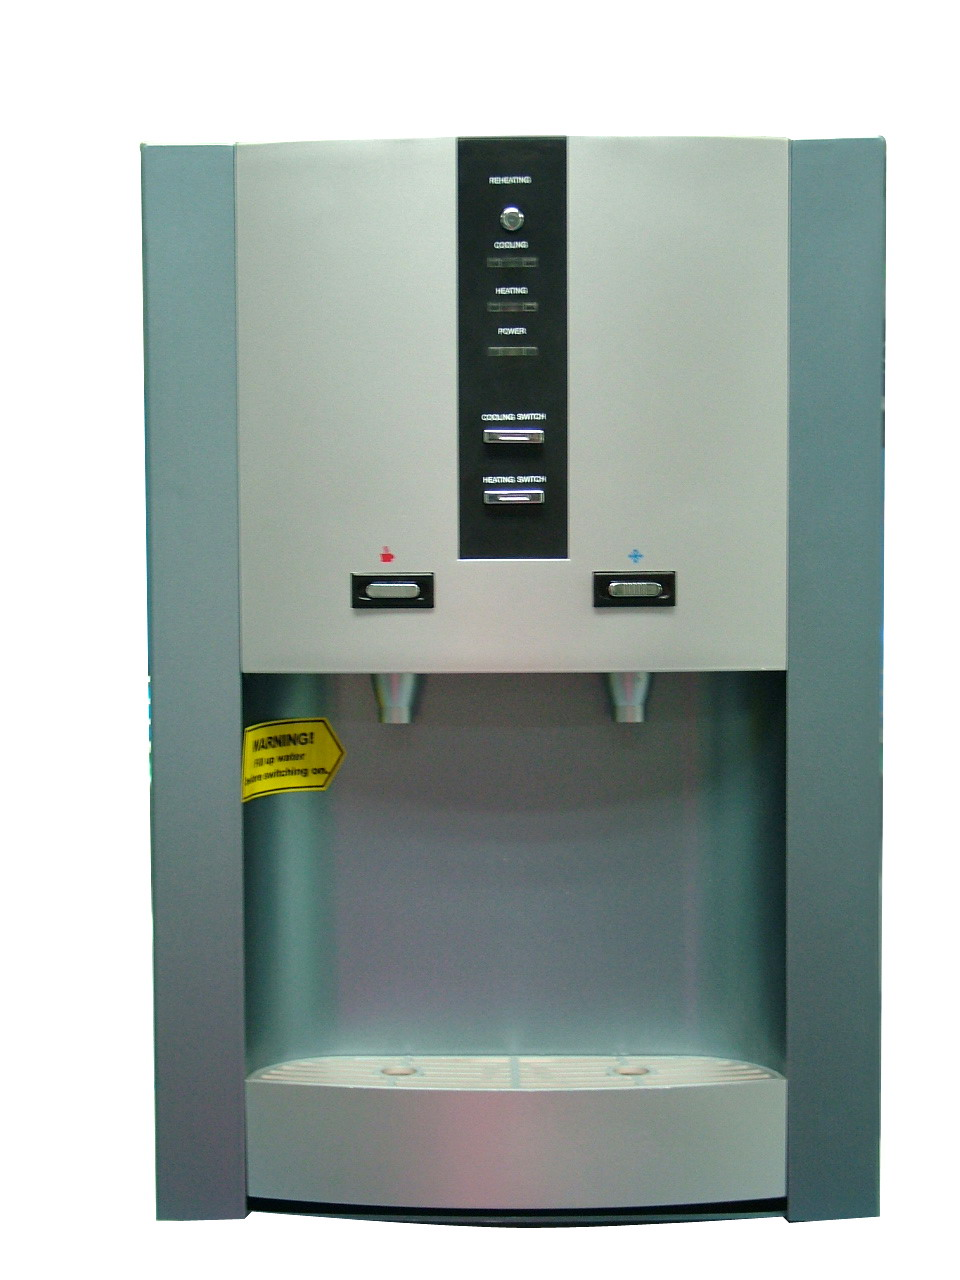 desktop hot water dispenser specification